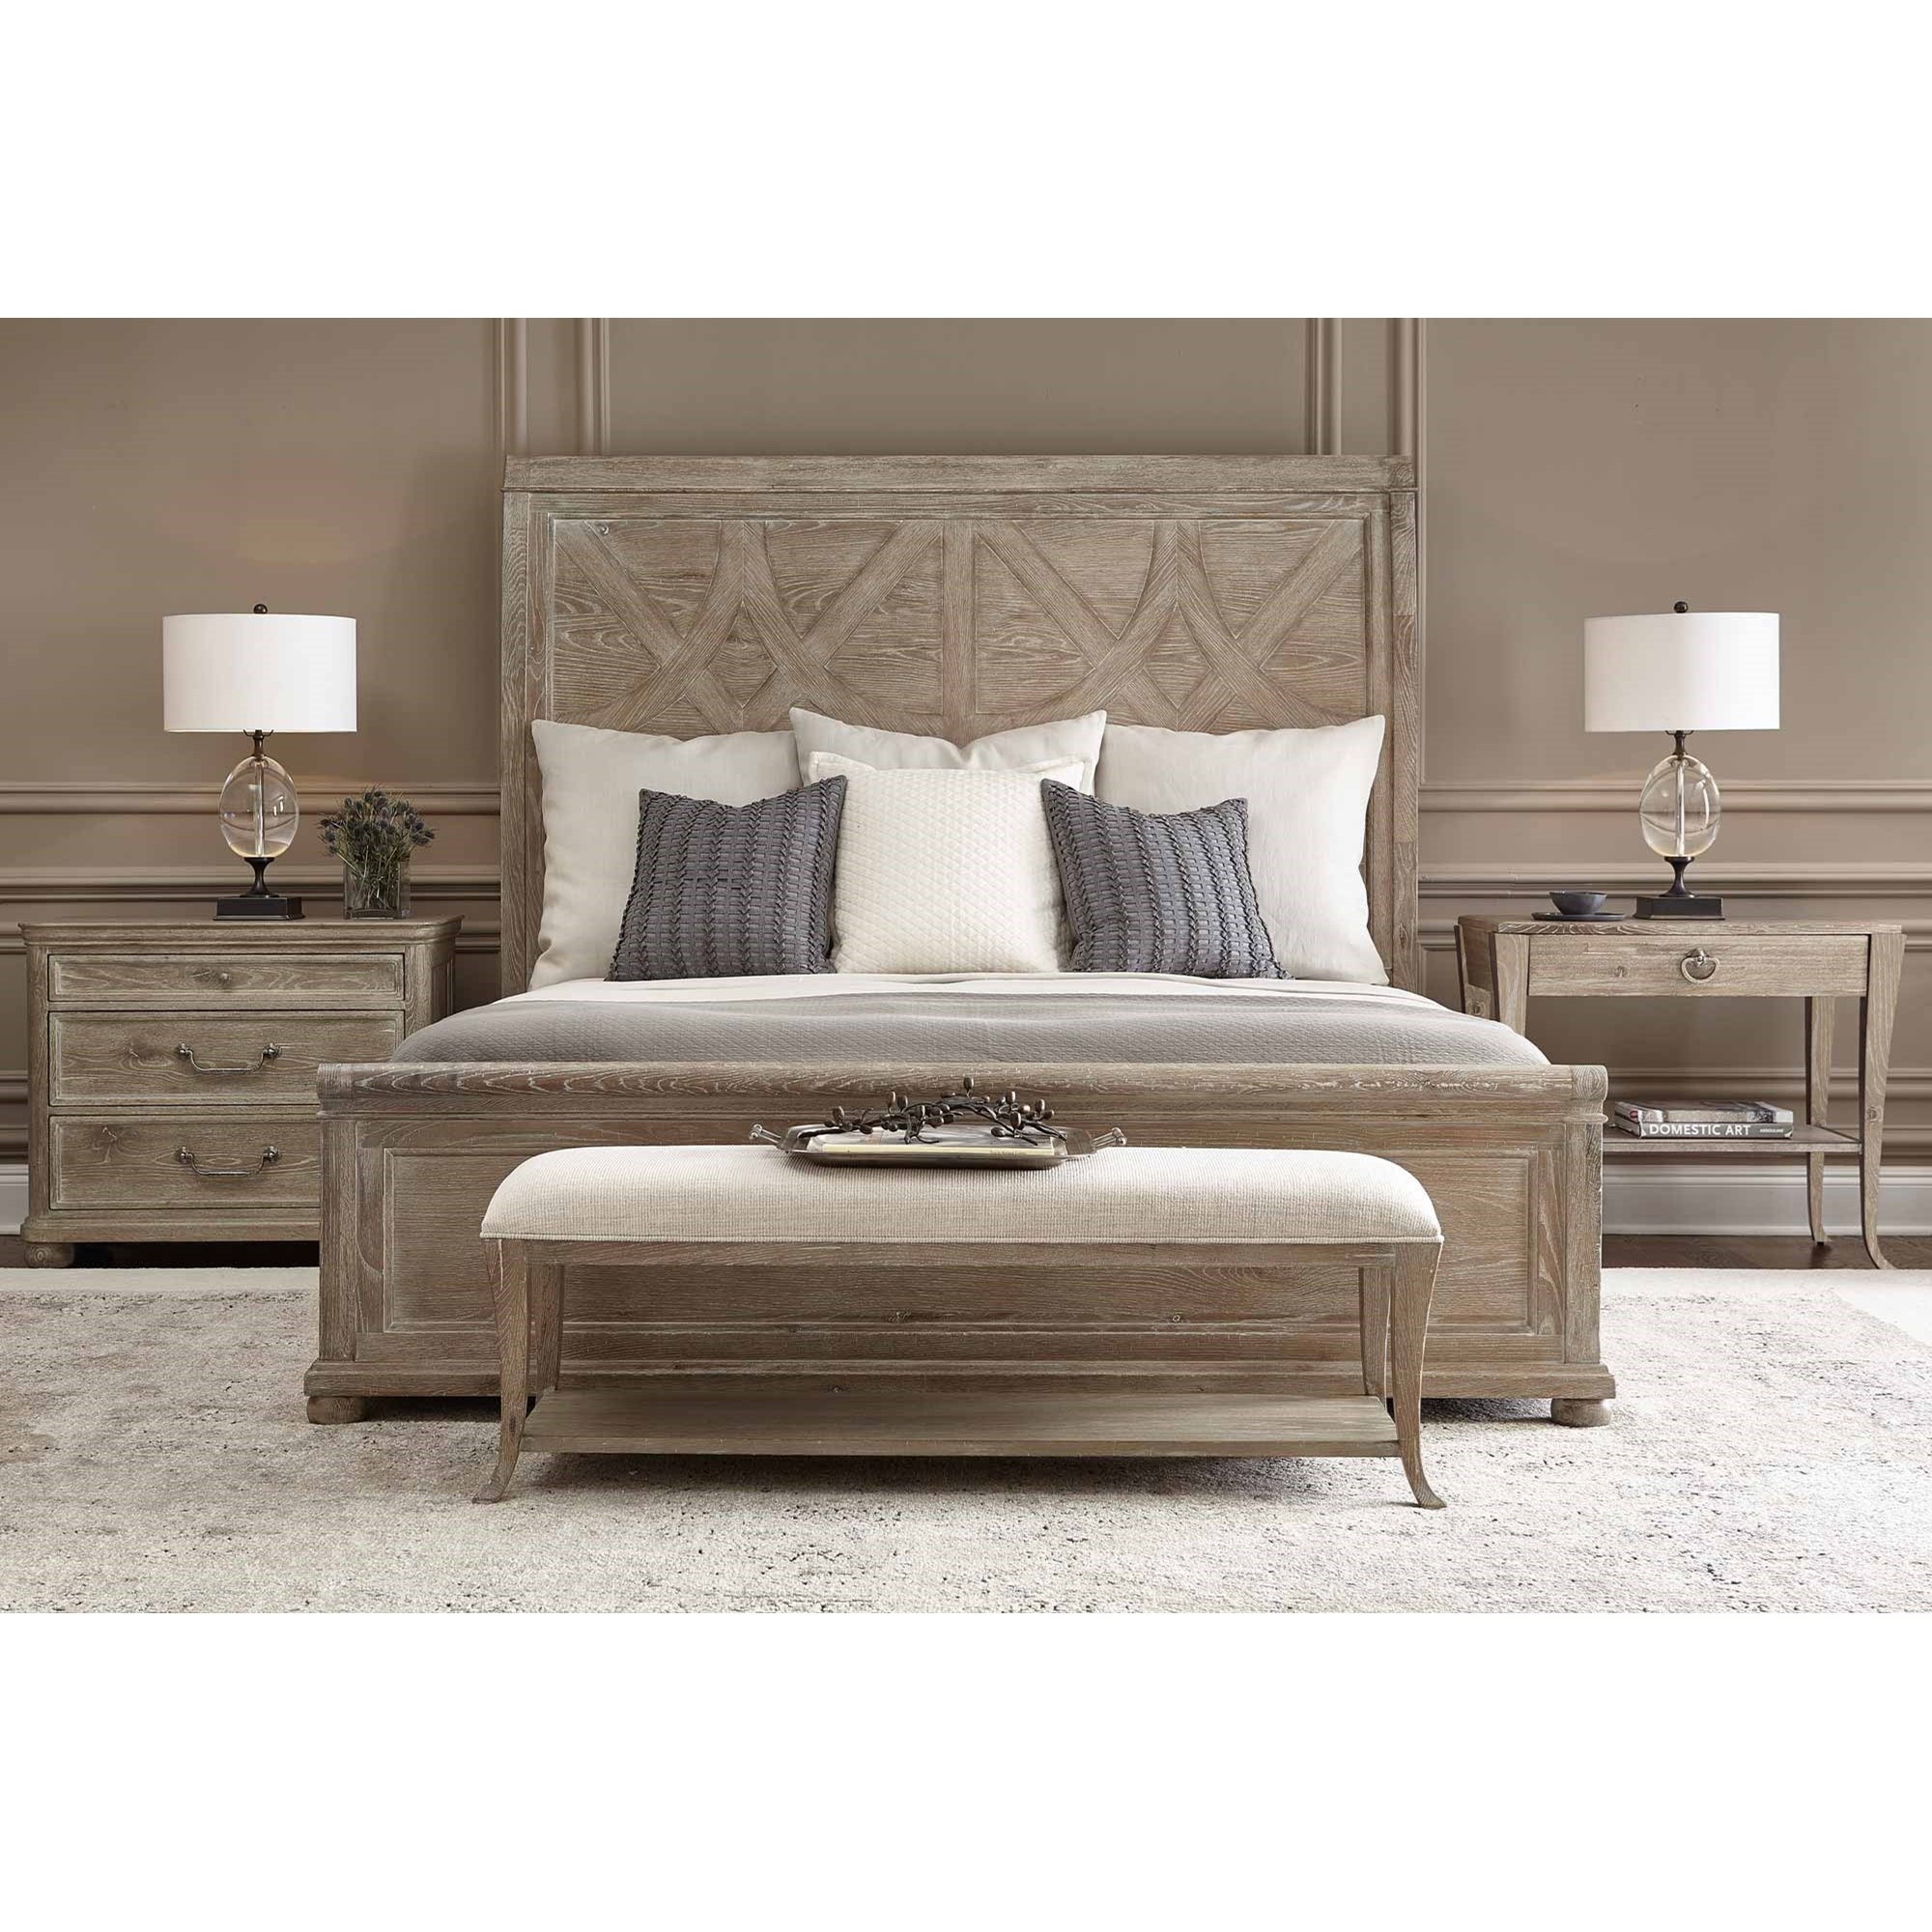 Rustic Patina Queen Bedroom Group at Williams & Kay